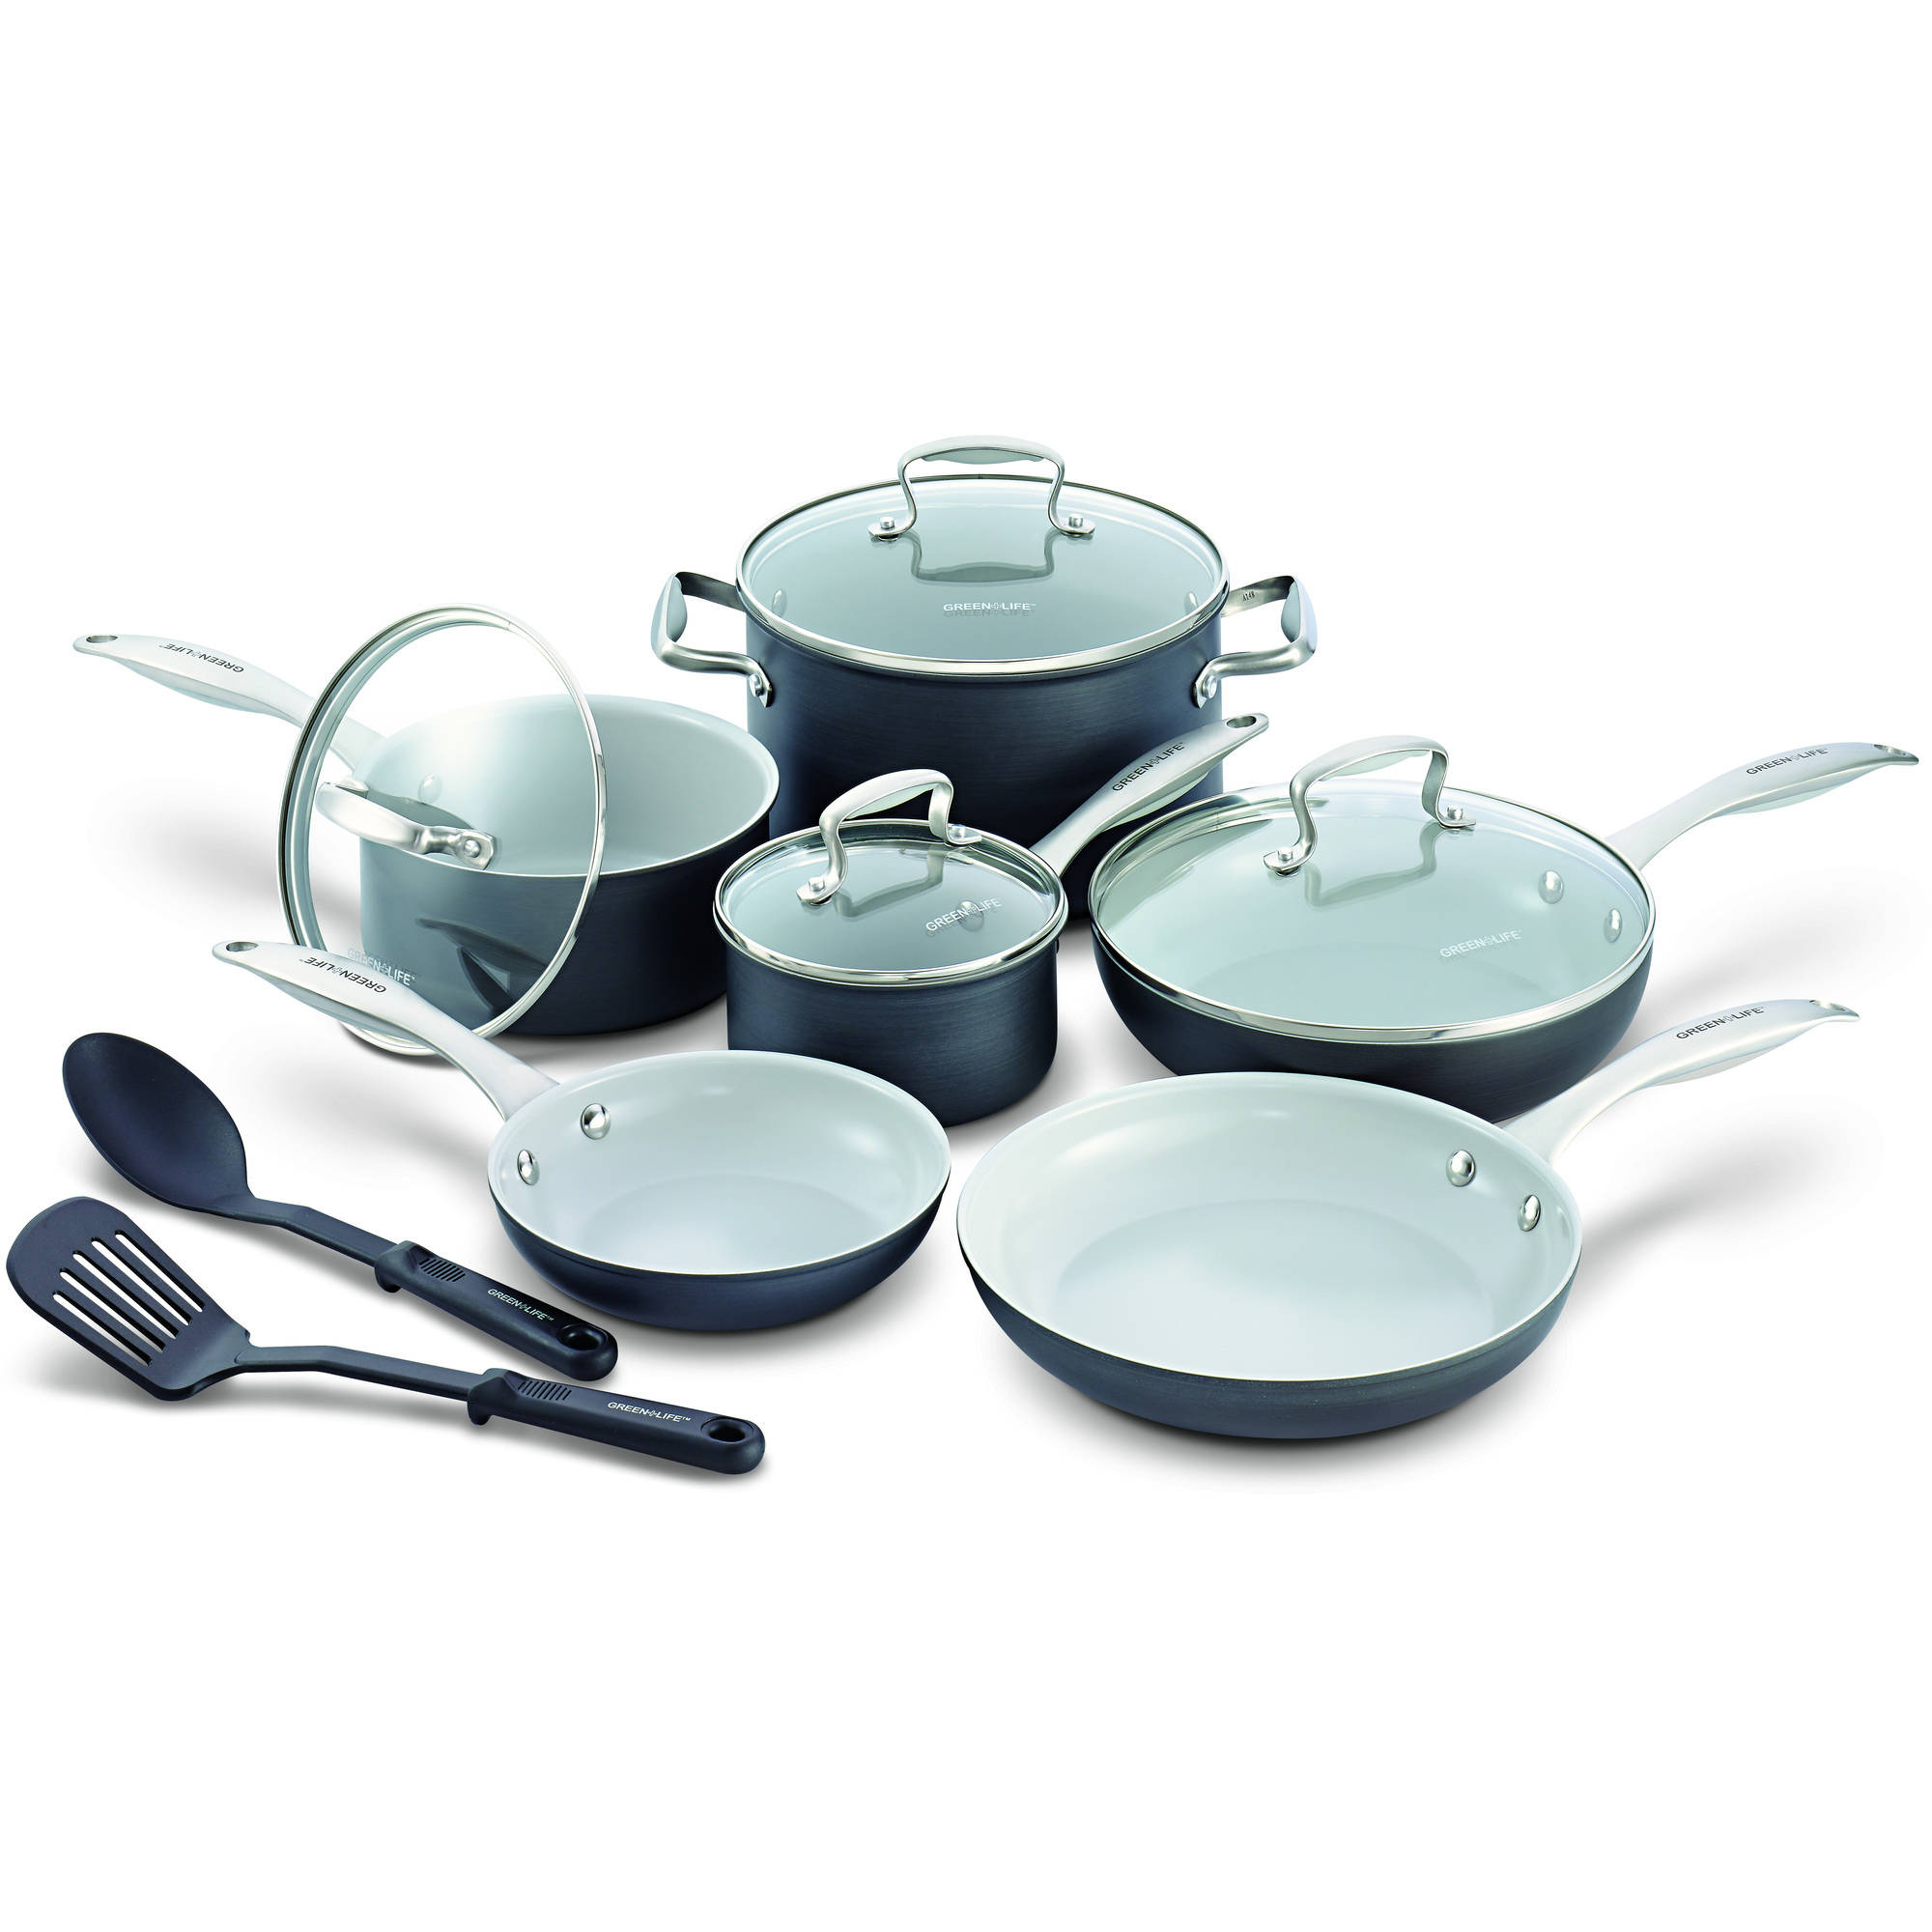 "GreenLife Healthy Ceramic Non-Stick 12"" Classic Hard Anodized 12-Piece Cookware Set"